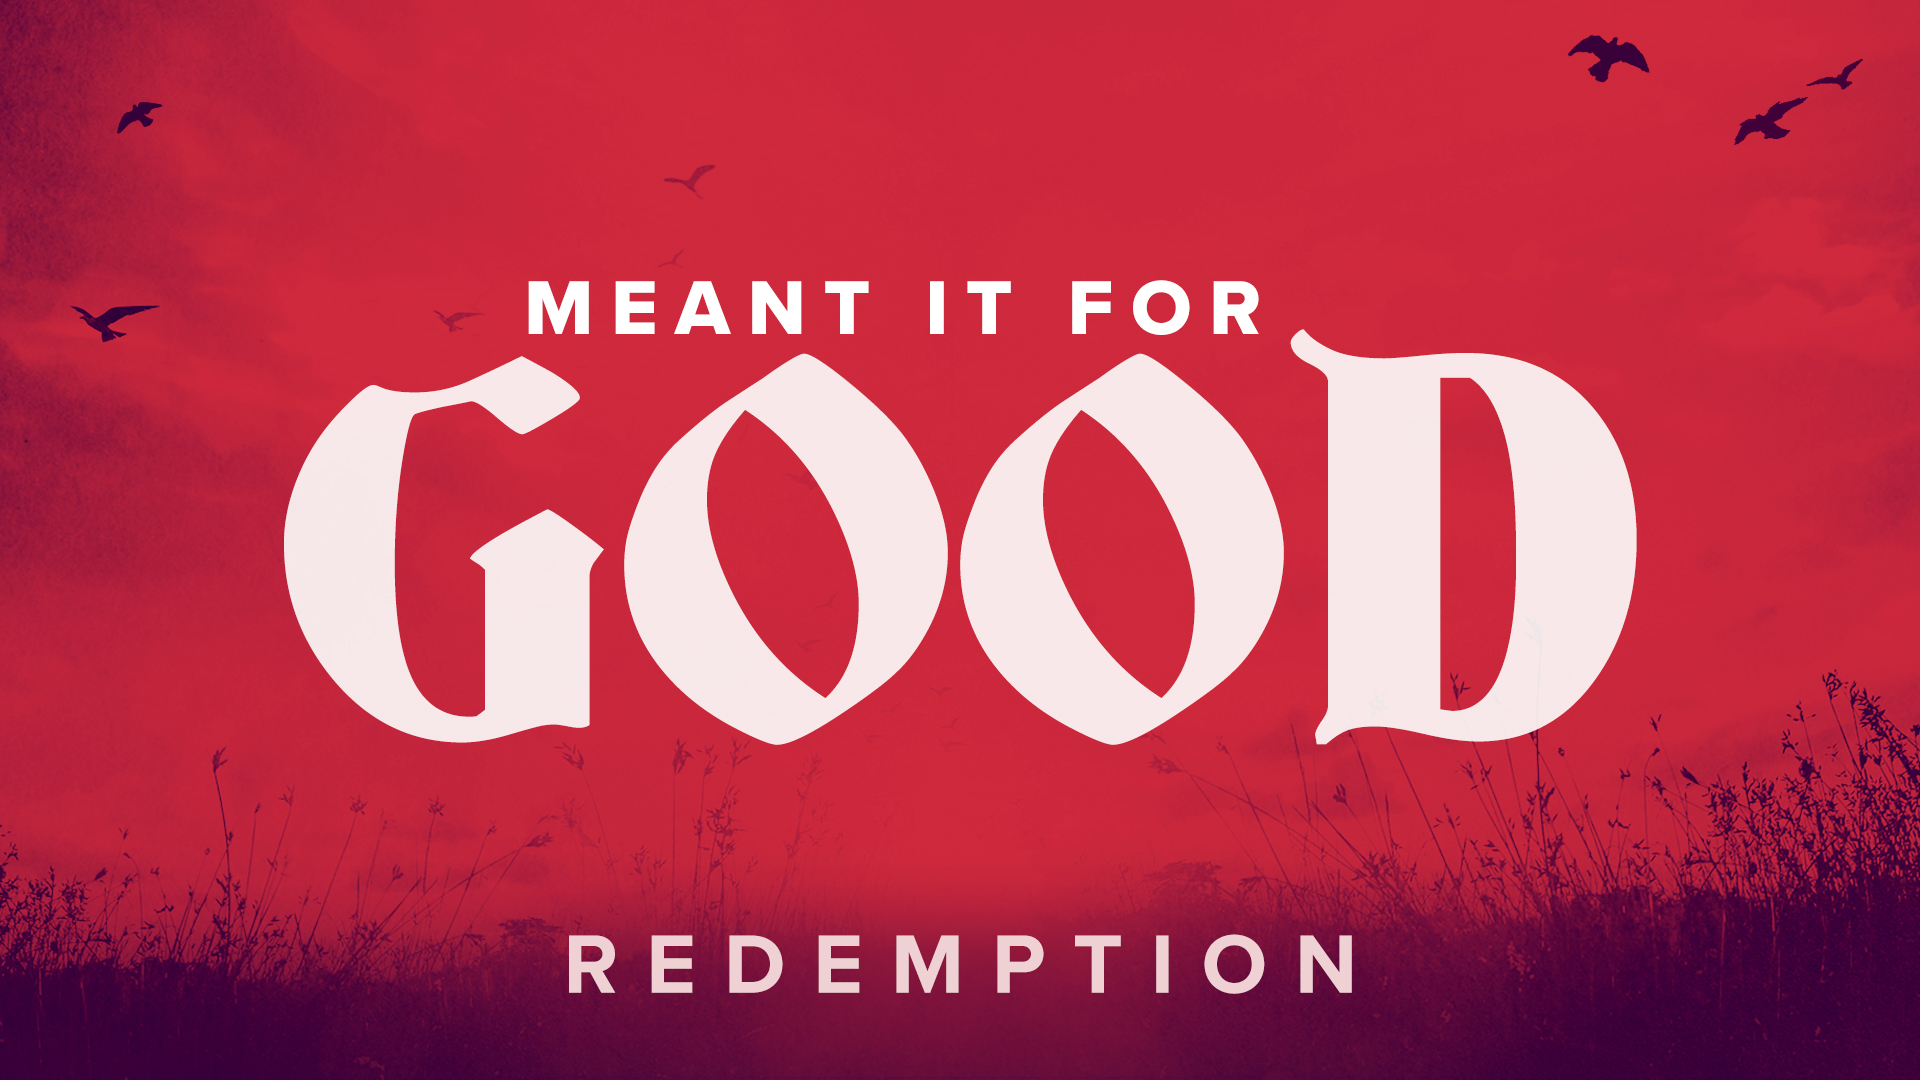 Meant It For Good [7] — Redemption | Passing Tests Pays Off